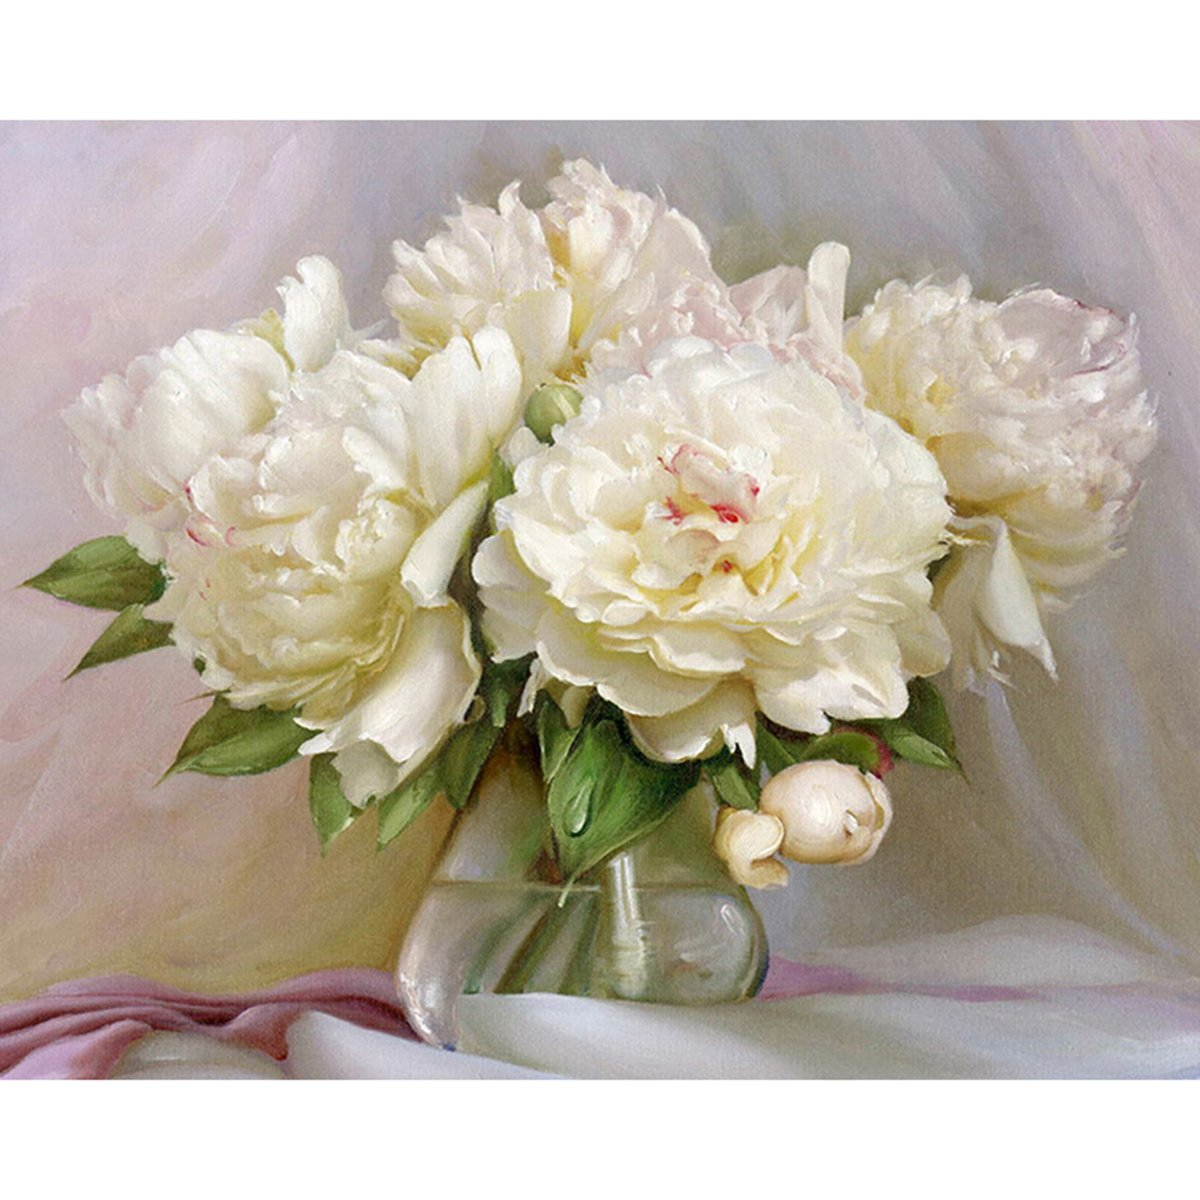 Shukqueen Diy Oil Painting, Adult's Paint by Number Kits, Acrylic Painting-White Peony 16X20 Inch (Framed Canvas)